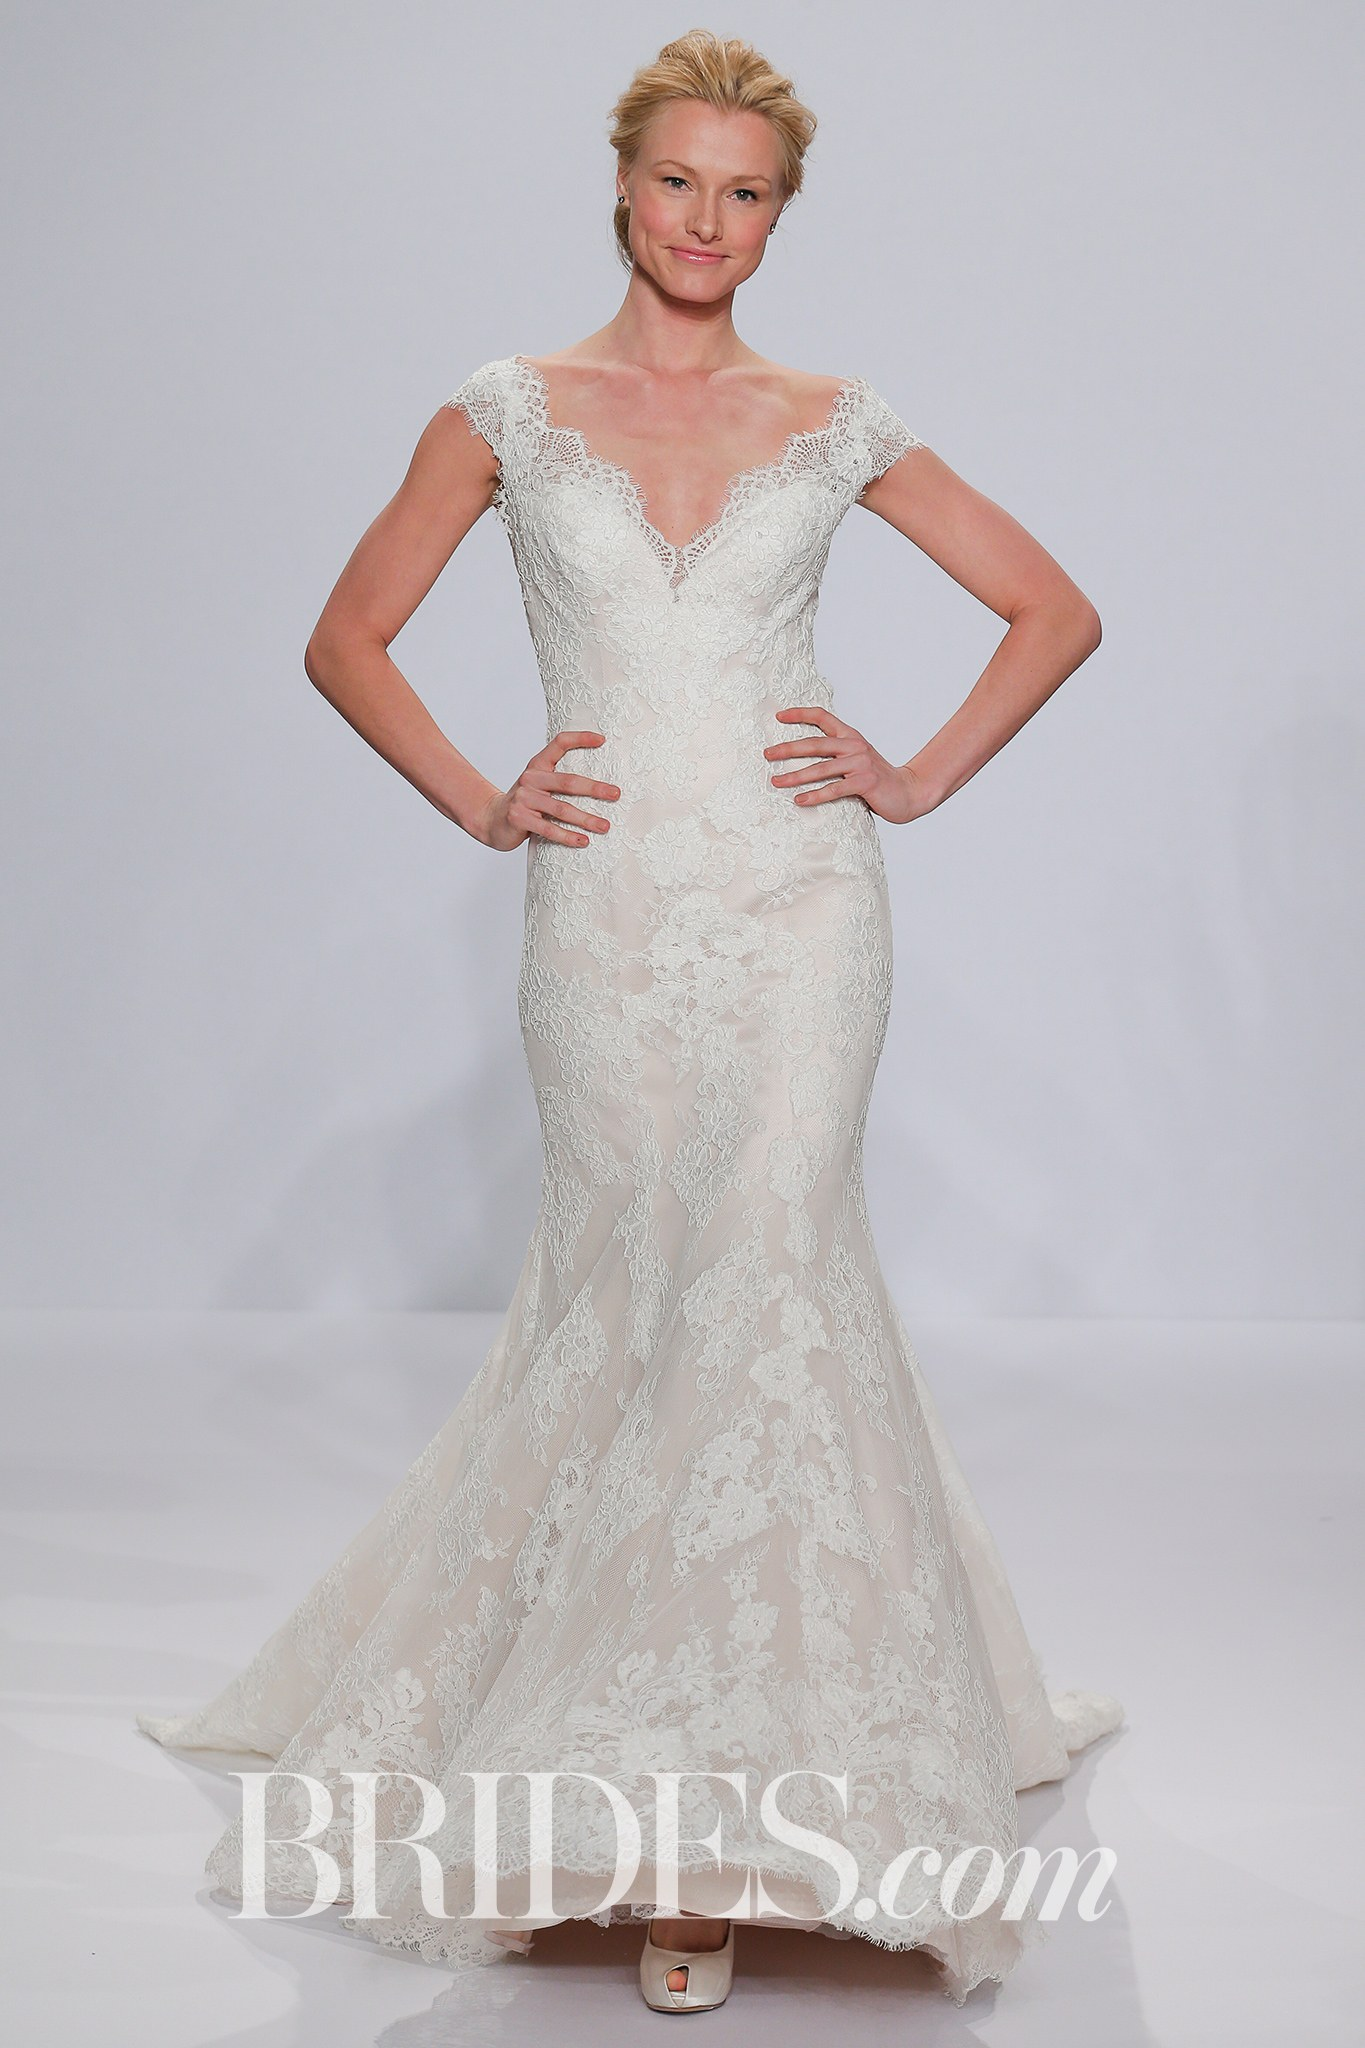 Randy Fenoli plus size wedding dress